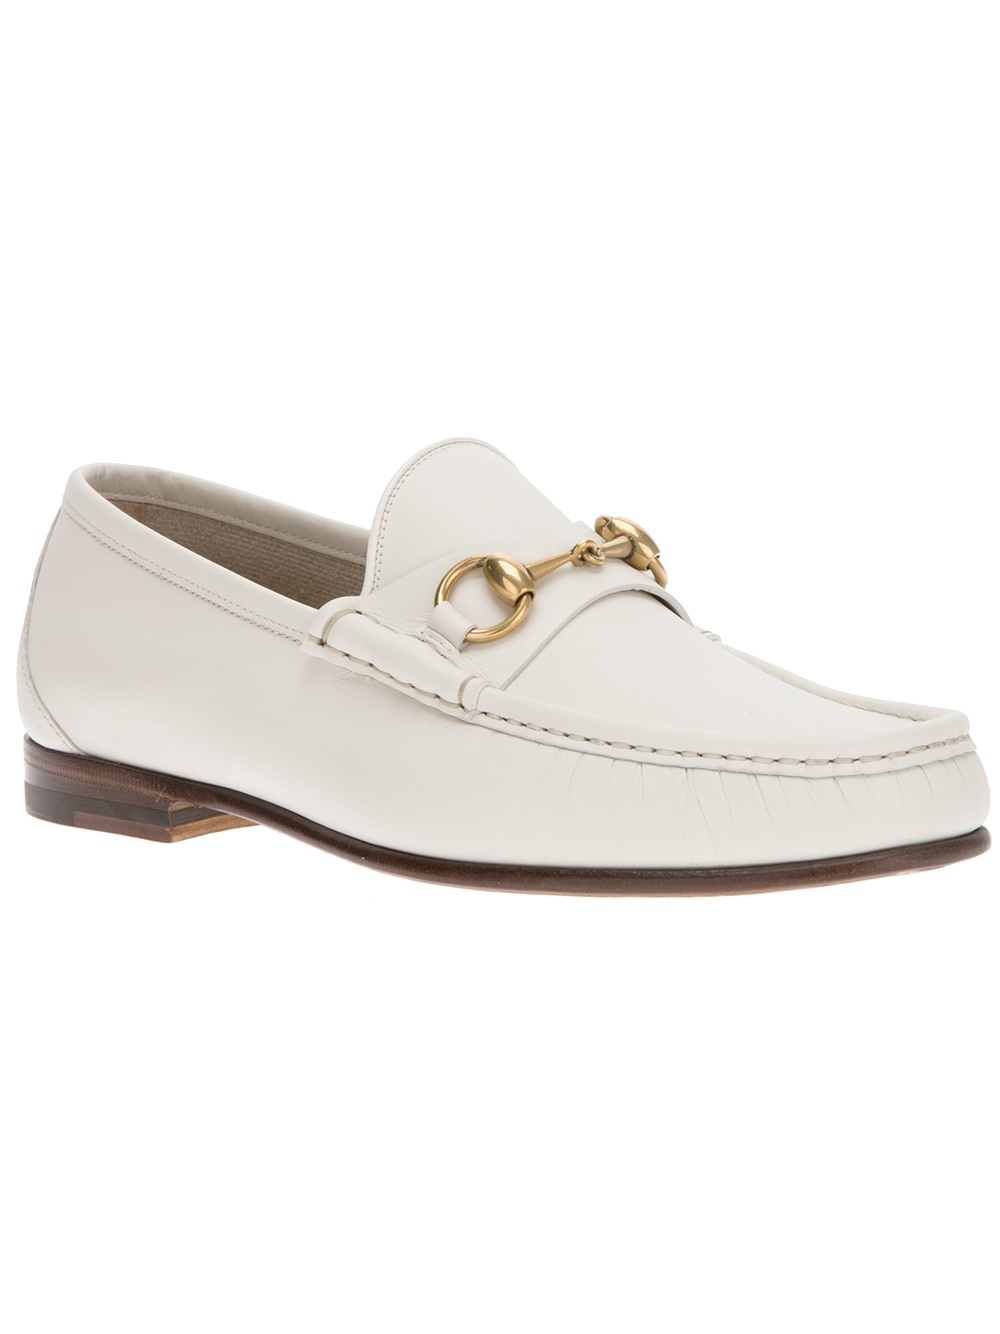 lyst gucci stirrup loafer in white for men